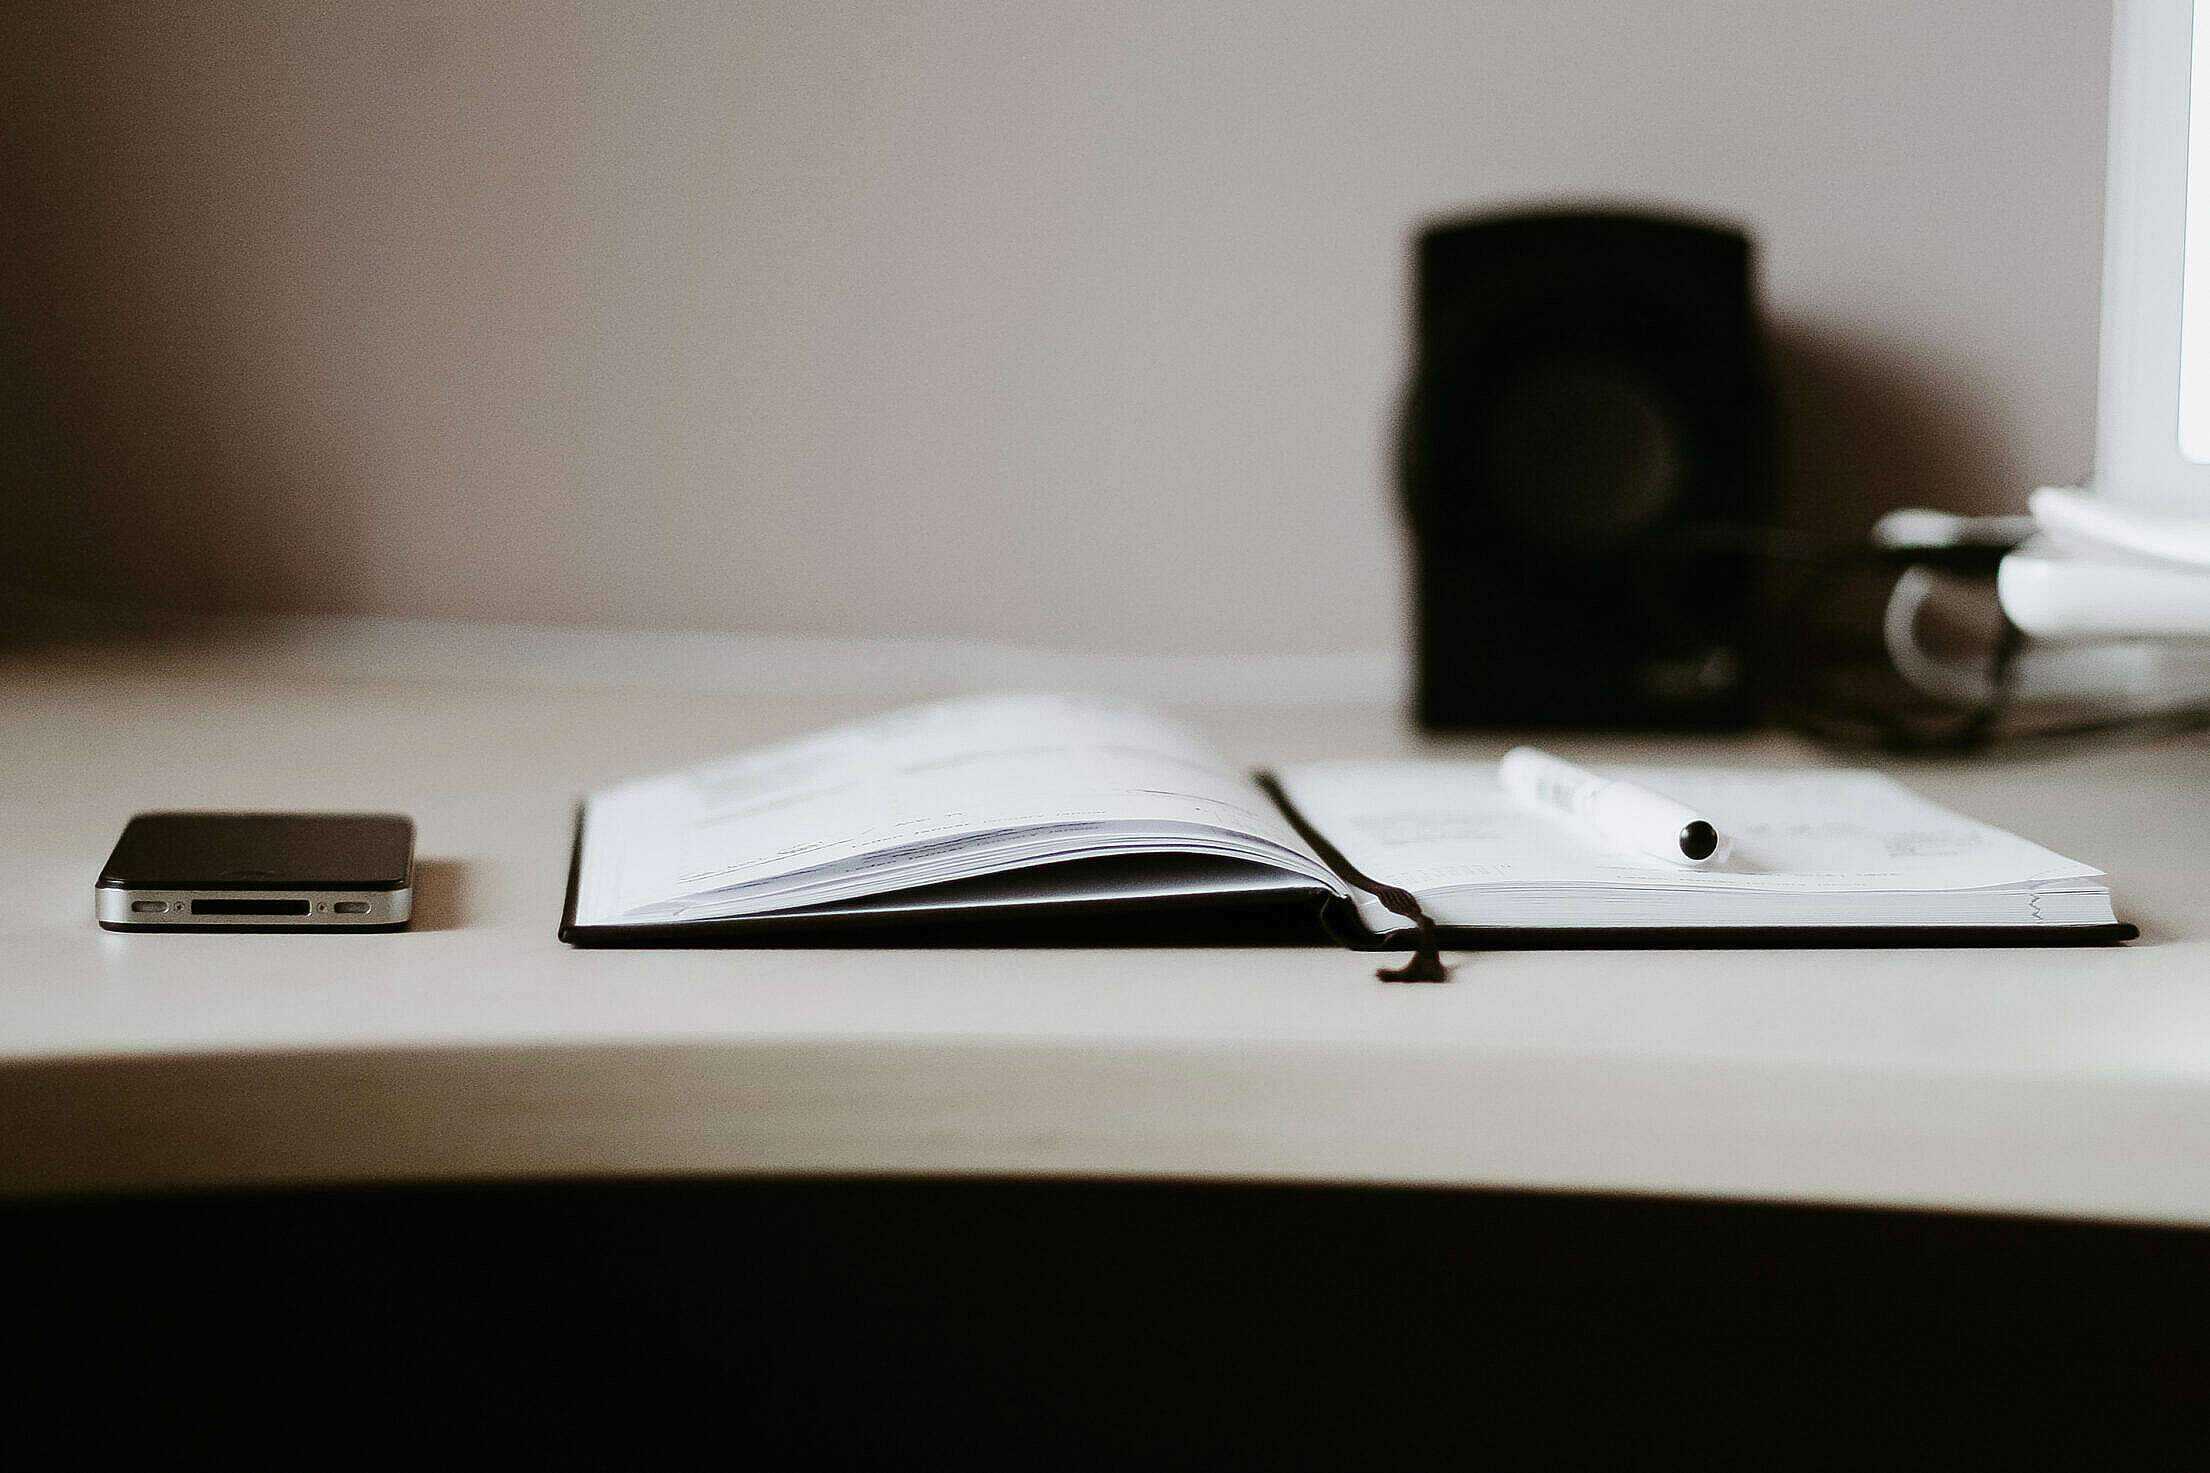 The Diary with Black iPhone Free Stock Photo